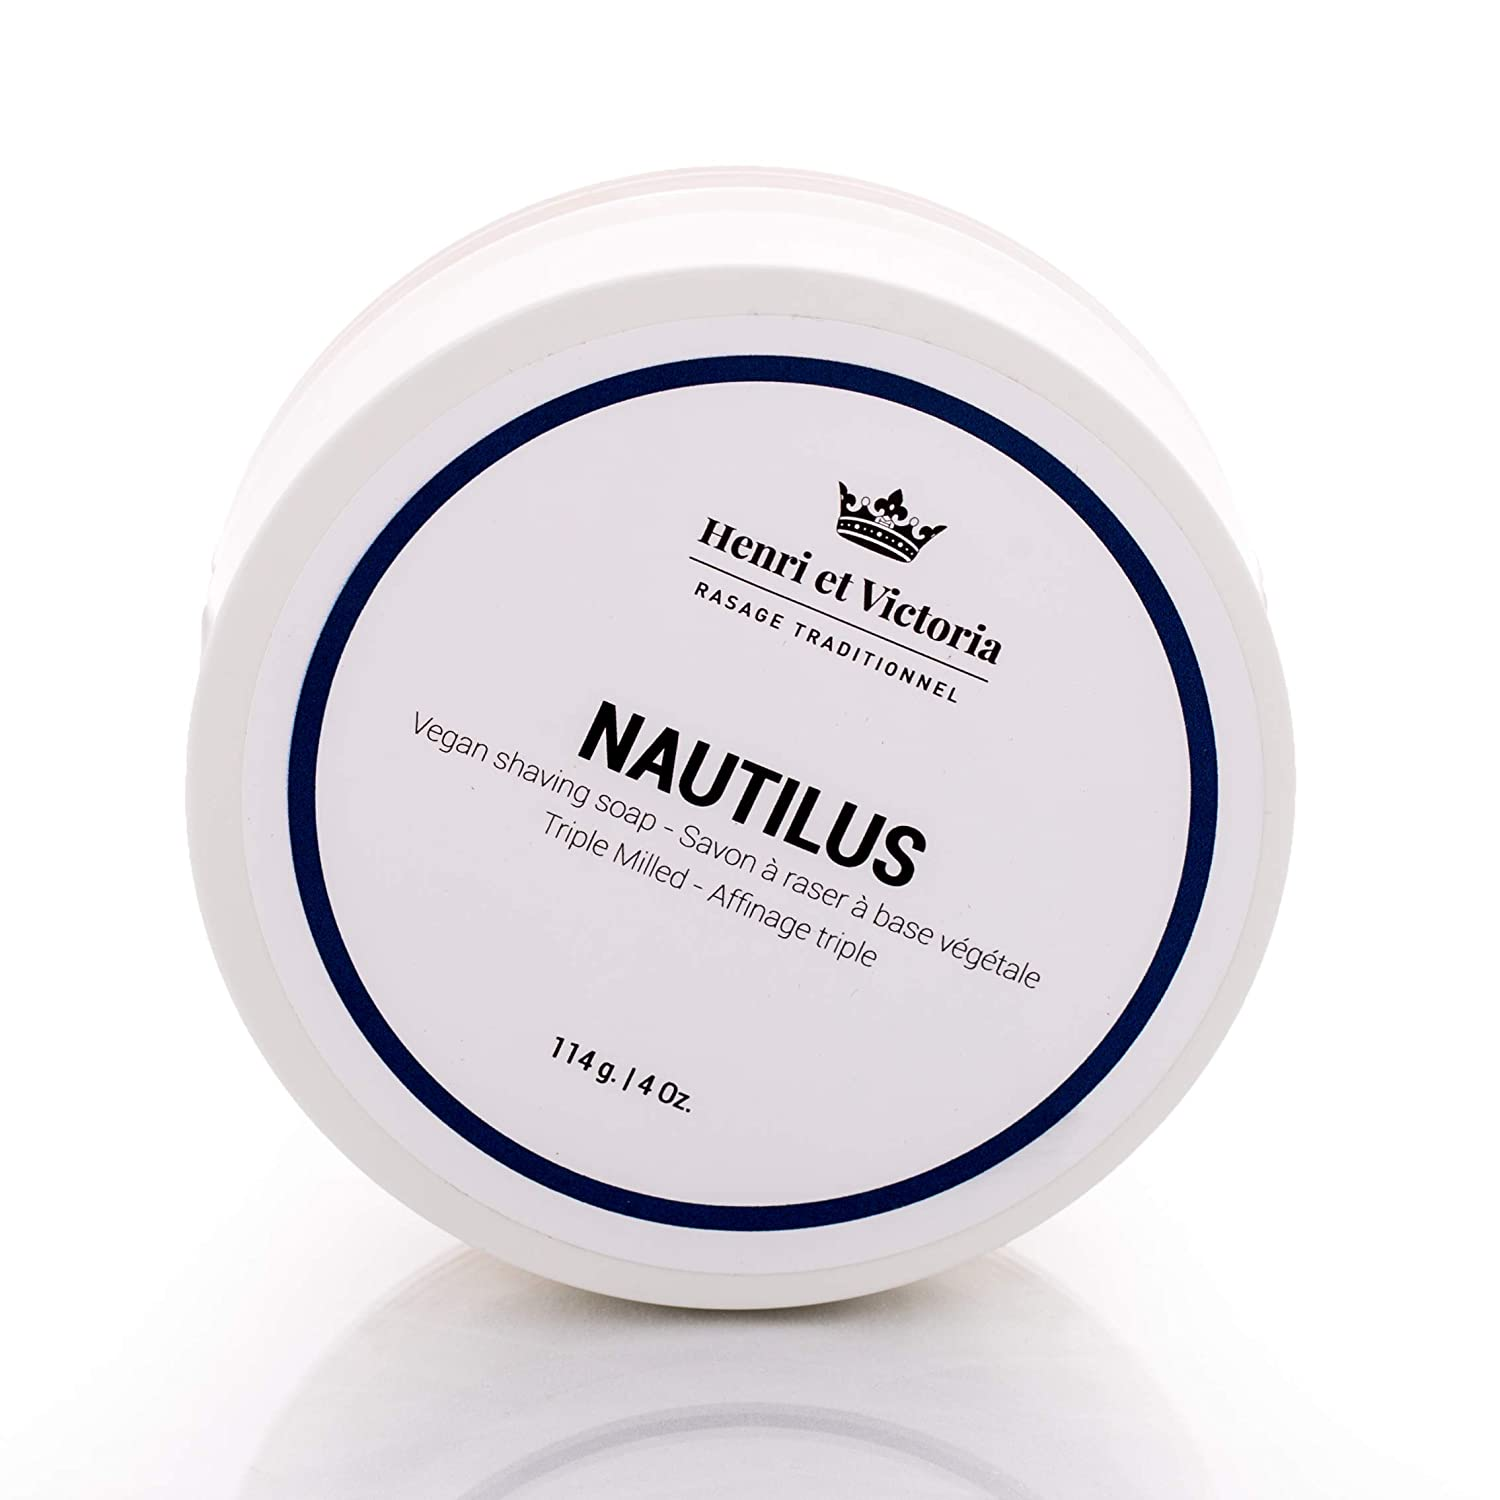 Nautilus shea Butter Triple Milled Shaving Soap For Men | Hand Made in CANADA byHenri et Victoria | Moisturizing, Ultra Glide, Cushioning, Easy Lather, Prevent Razor Burn and Dry Skin | 114 g (4 oz) Henri et Victoria Inc.